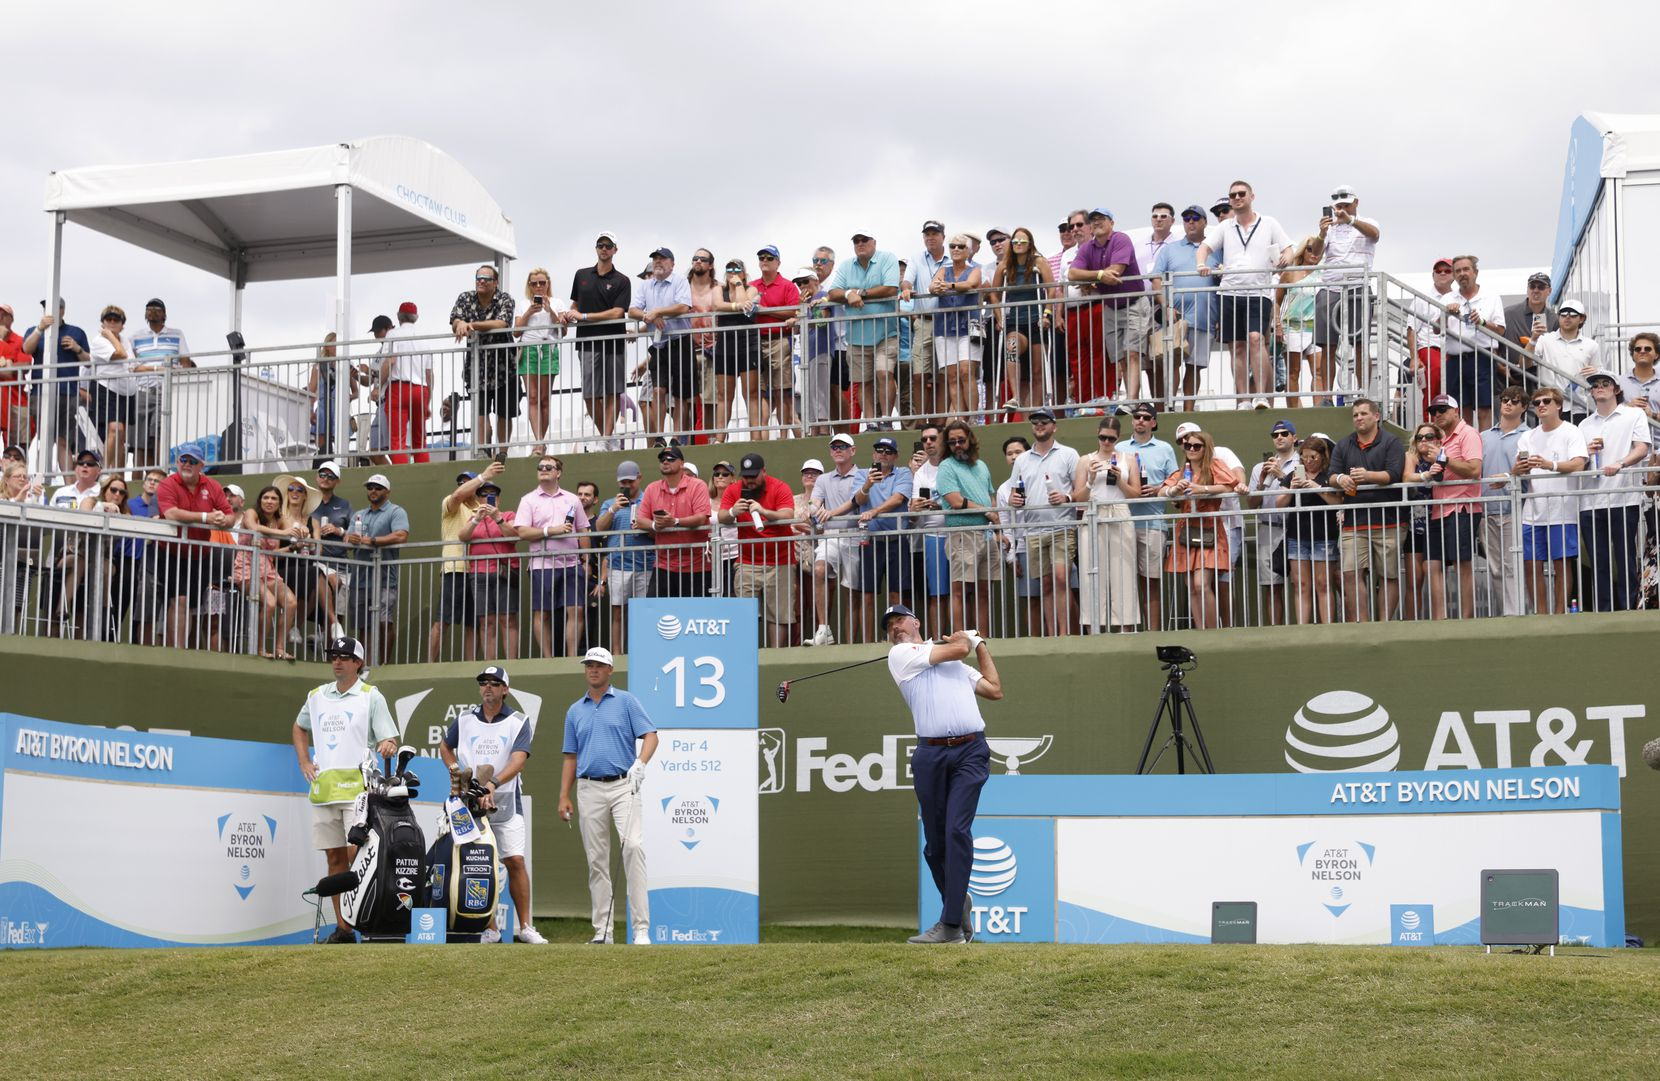 Matt Kuchar tees off on the 13th hole during round 3 of the AT&T Byron Nelson  at TPC Craig Ranch on Saturday, May 15, 2021 in McKinney, Texas. (Vernon Bryant/The Dallas Morning News)